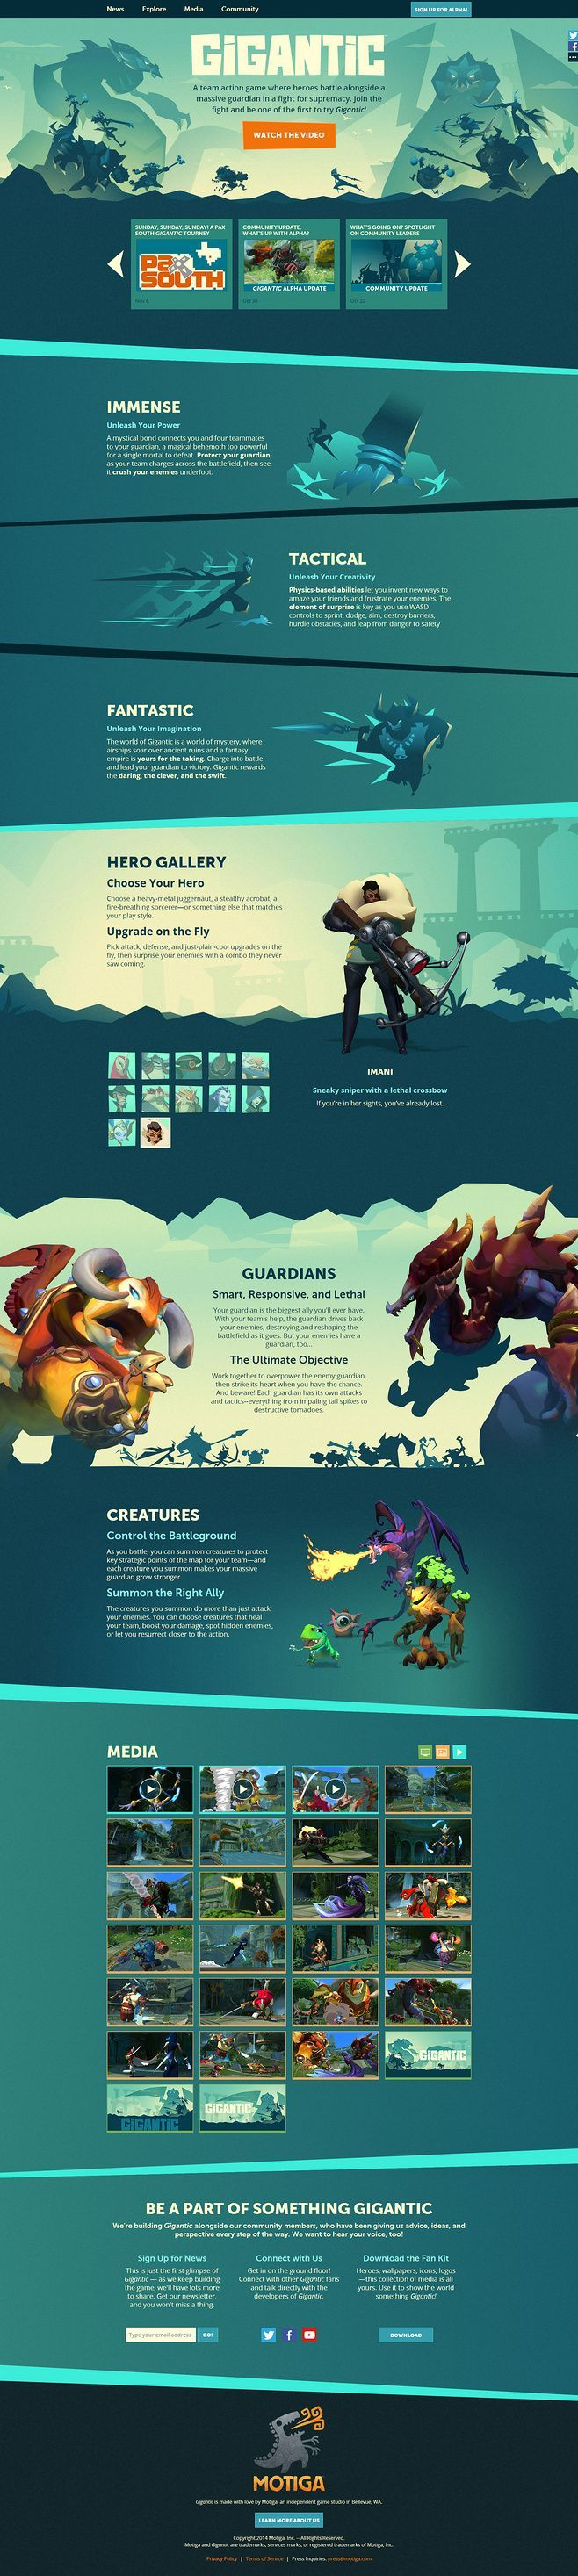 Gigantic by Motiga.